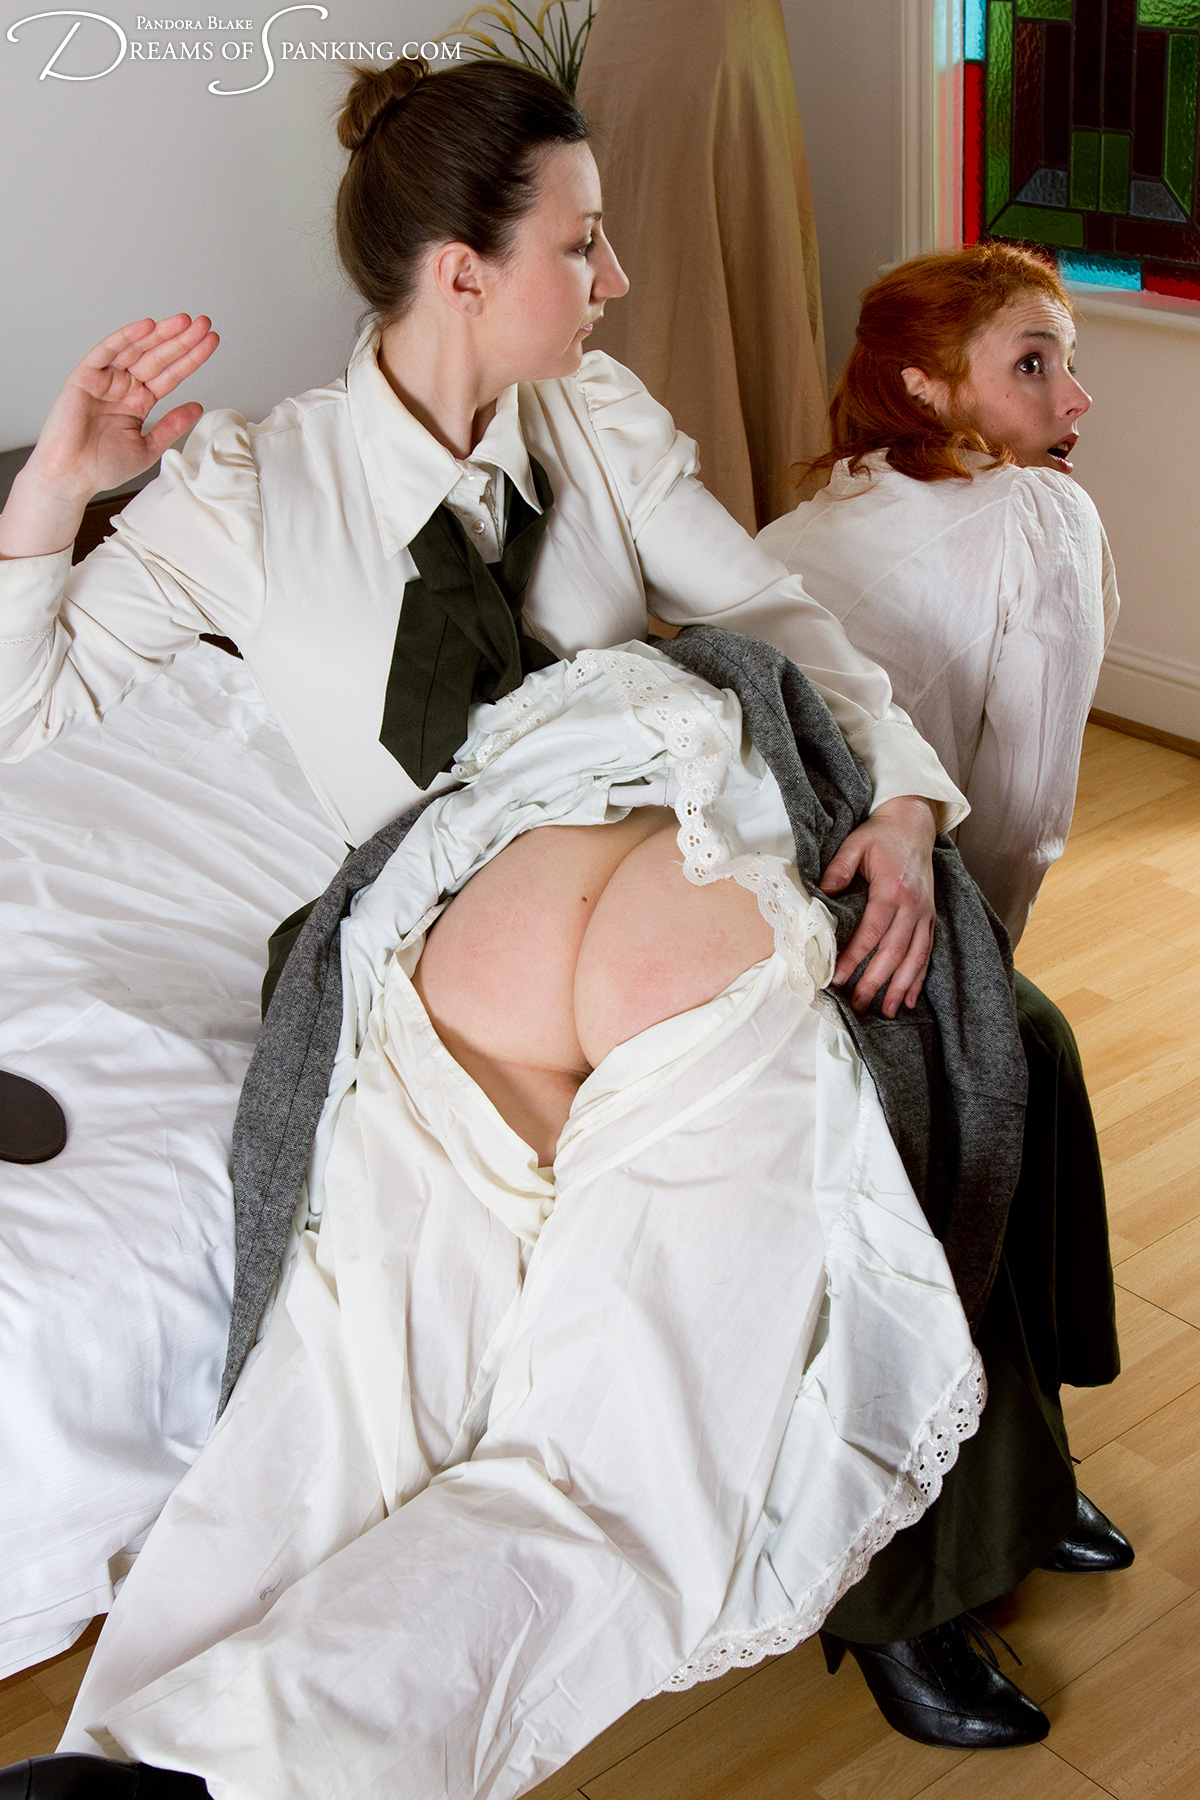 The Edwardian Governess at Dreams of Spanking, starring Amelia-Jane Rutherford, Caroline Gray and Pandora Blake